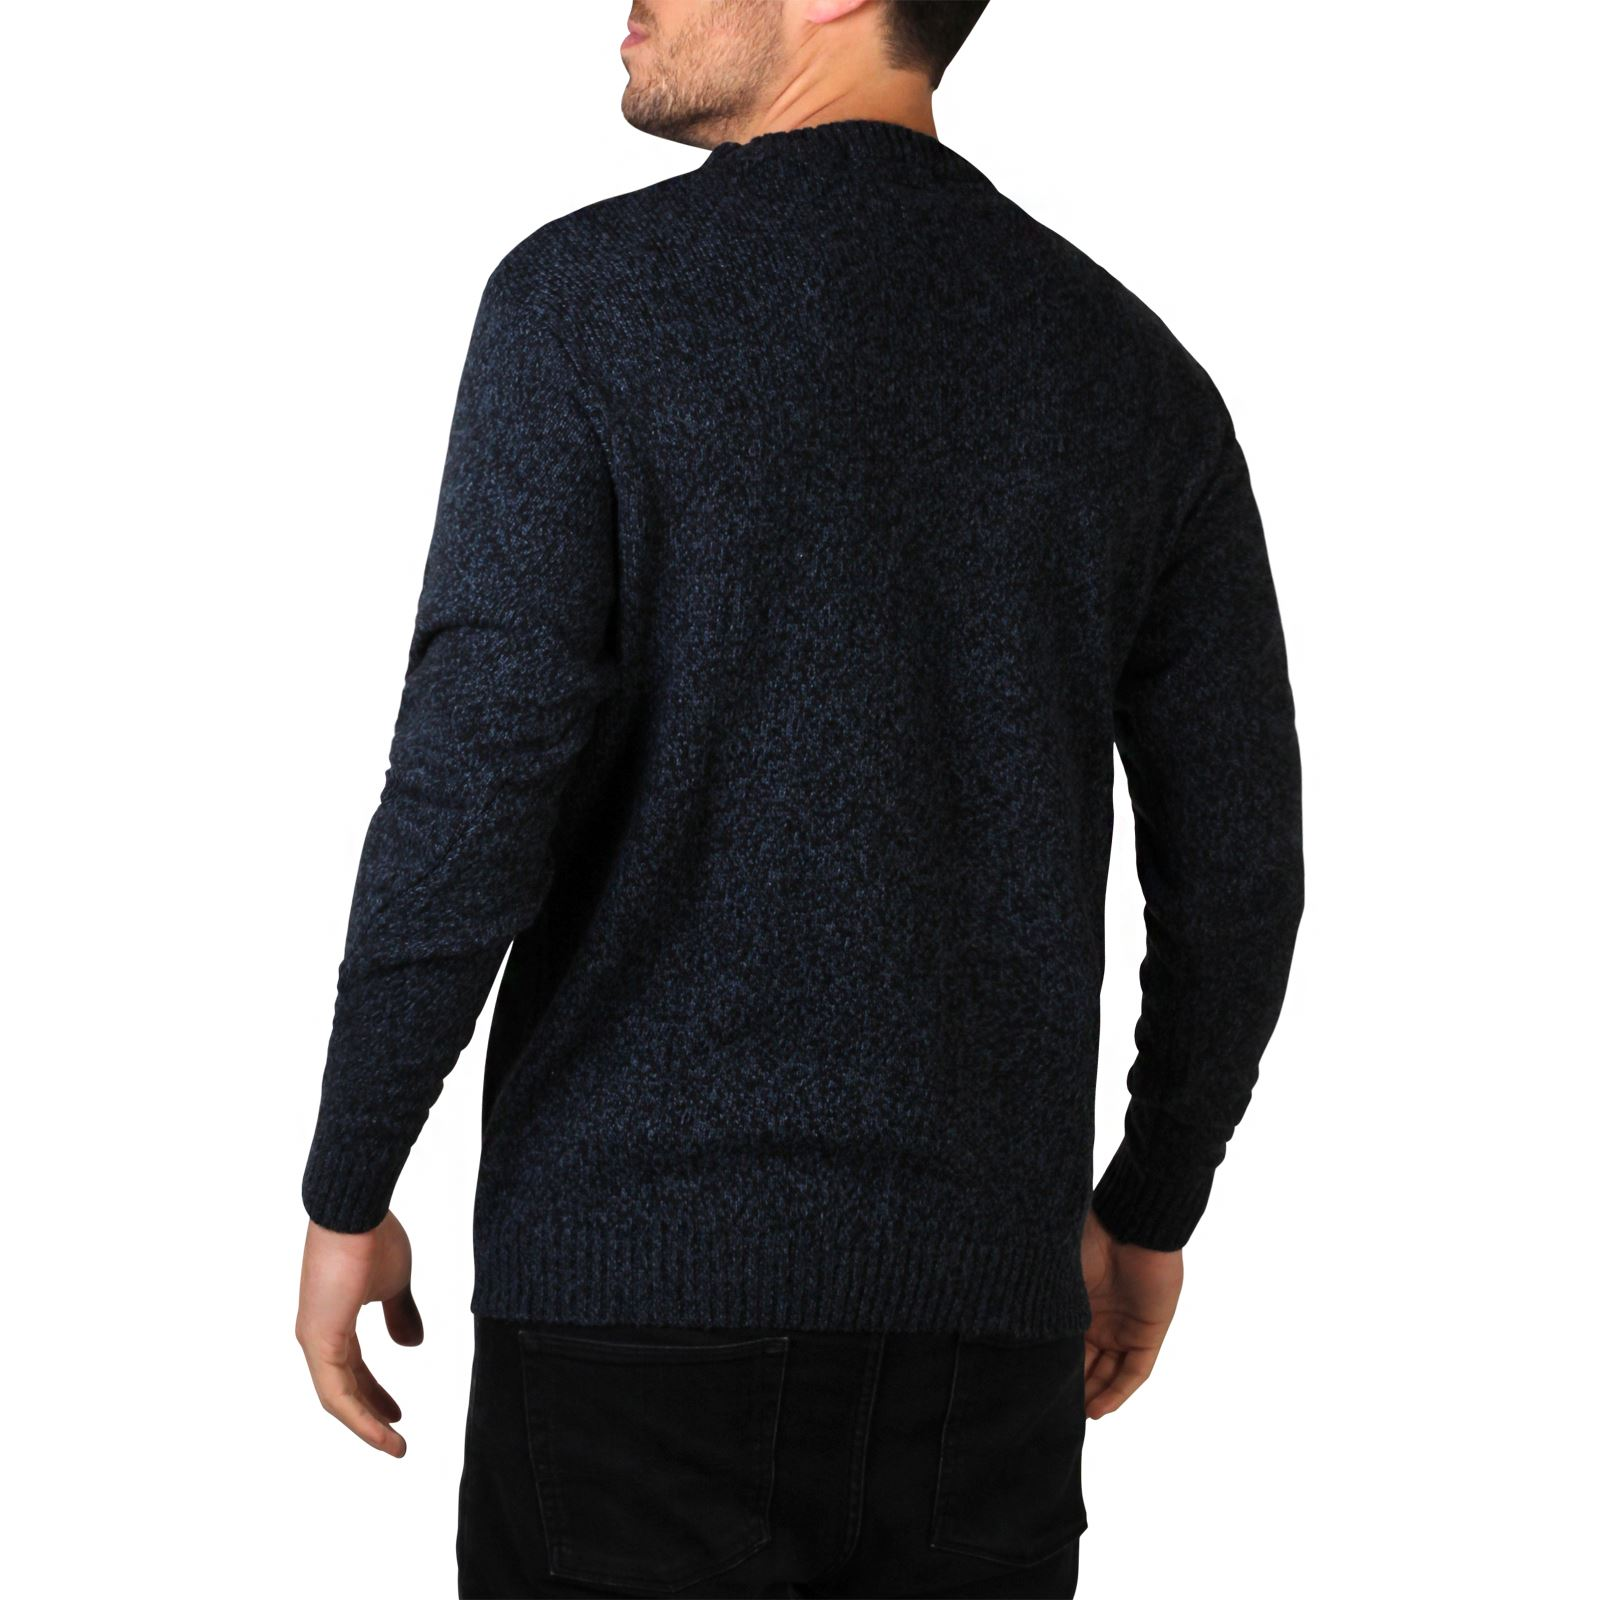 Mens-Soft-Knitted-Round-Crew-Neck-Warm-Jumper-Sweater-Grandad-Pullover-Top thumbnail 9